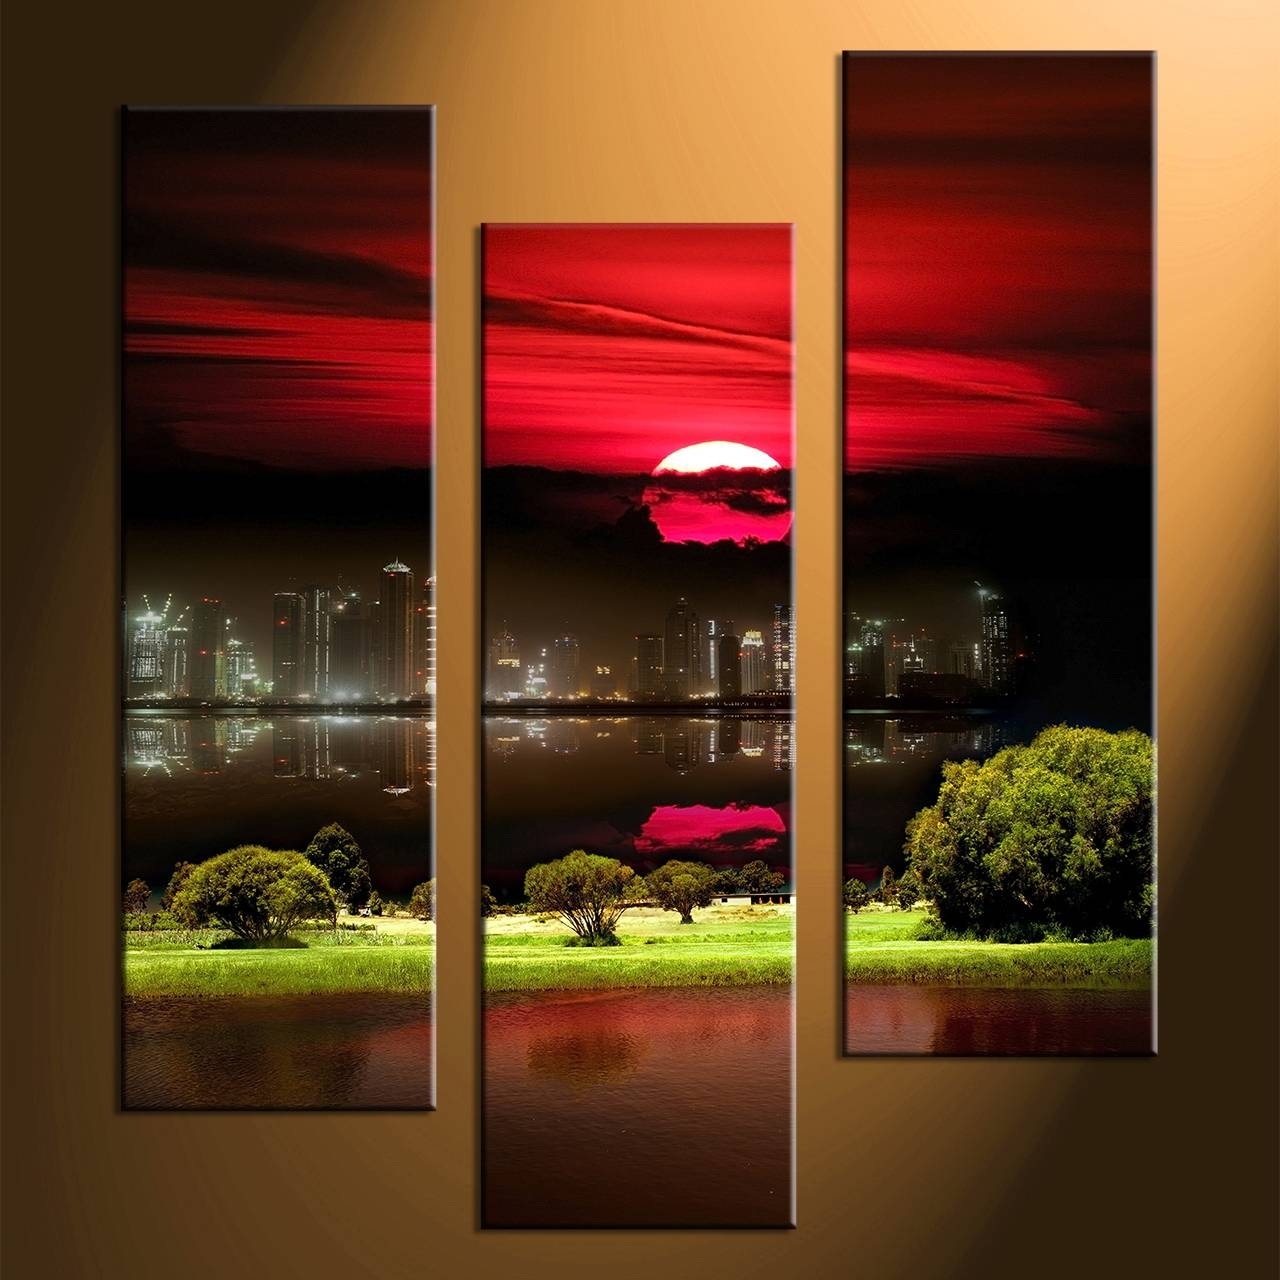 Outstanding White Blossom'' 2 Piece Canvas Wall Art Set Piece With Most Up To Date 3 Set Canvas Wall Art (Gallery 2 of 20)